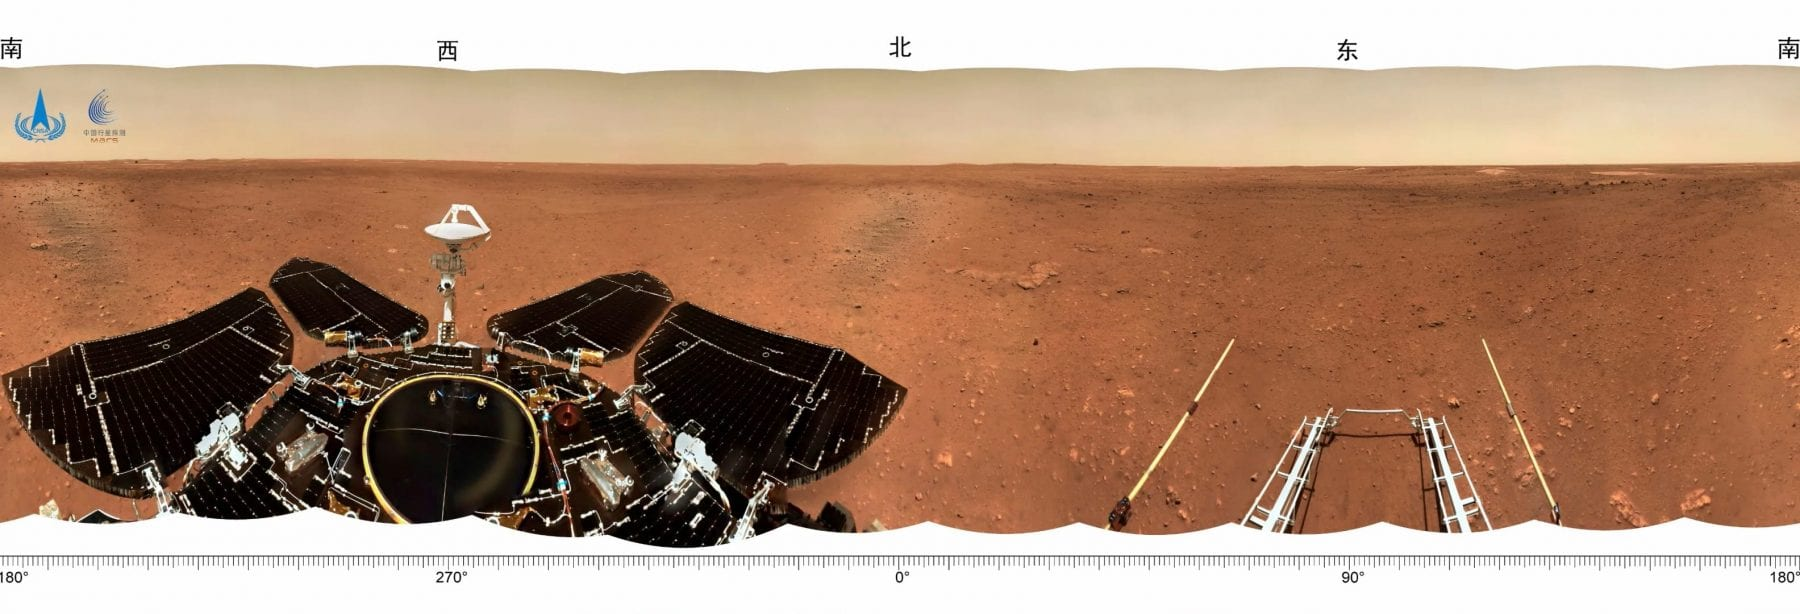 Another fascinating panorama from the surface of Mars showing parts of China's Zhurong rover as well as the landing platform. Credit: CNSA